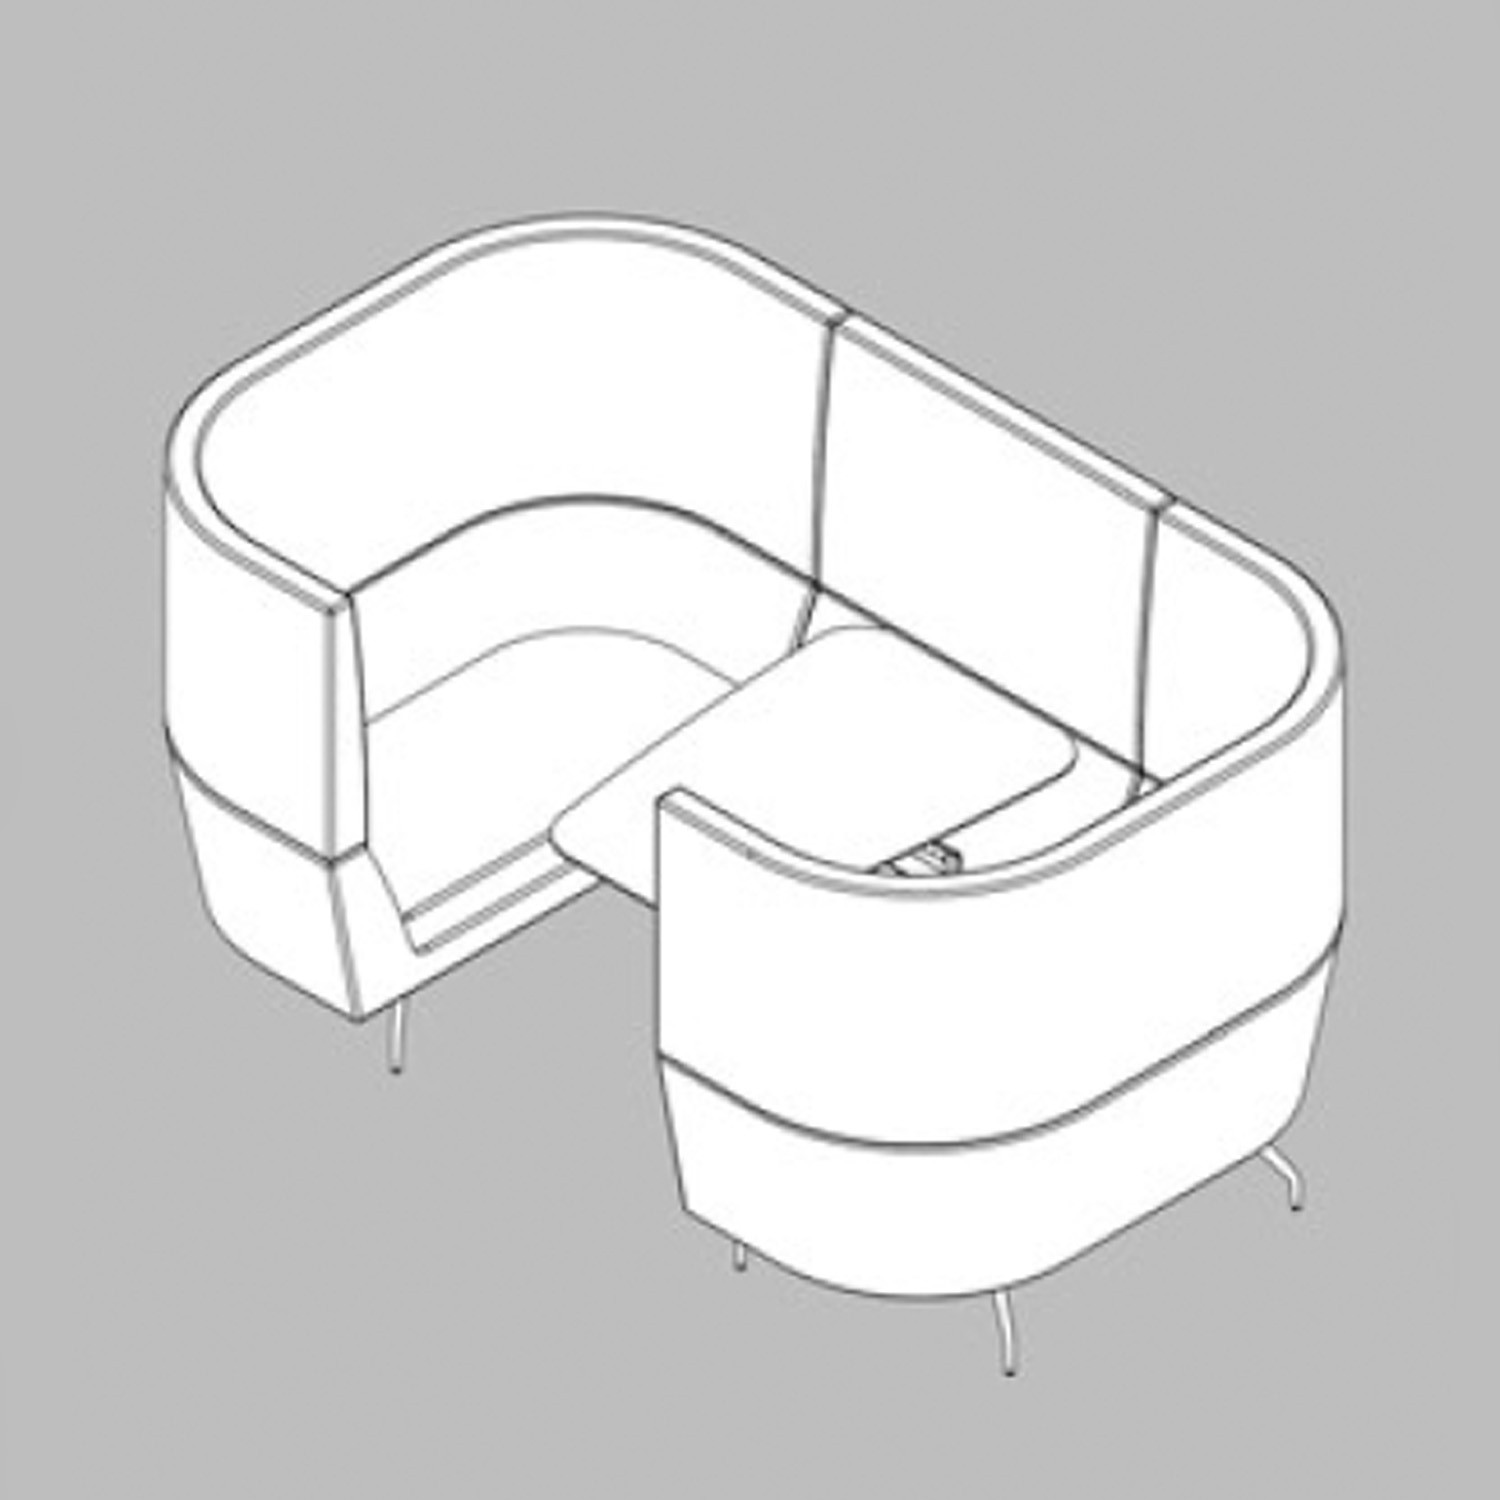 Cwtch Workbay Sofa Line Drawing